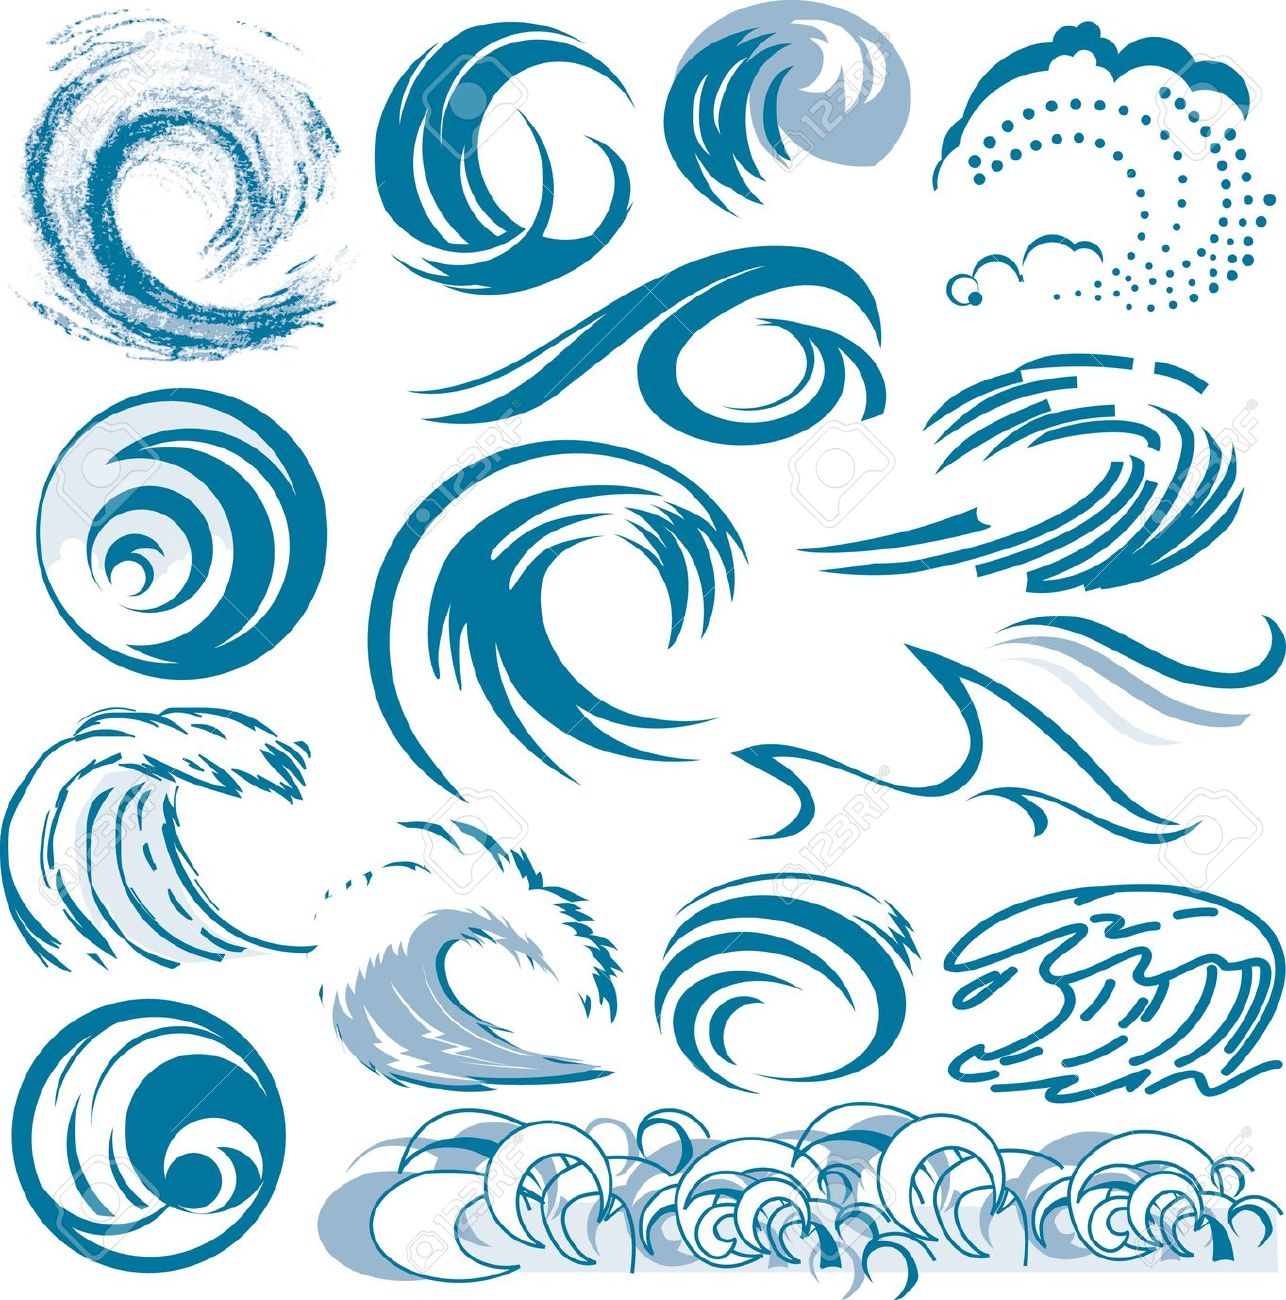 Wave clipart tide. Collection panda free images